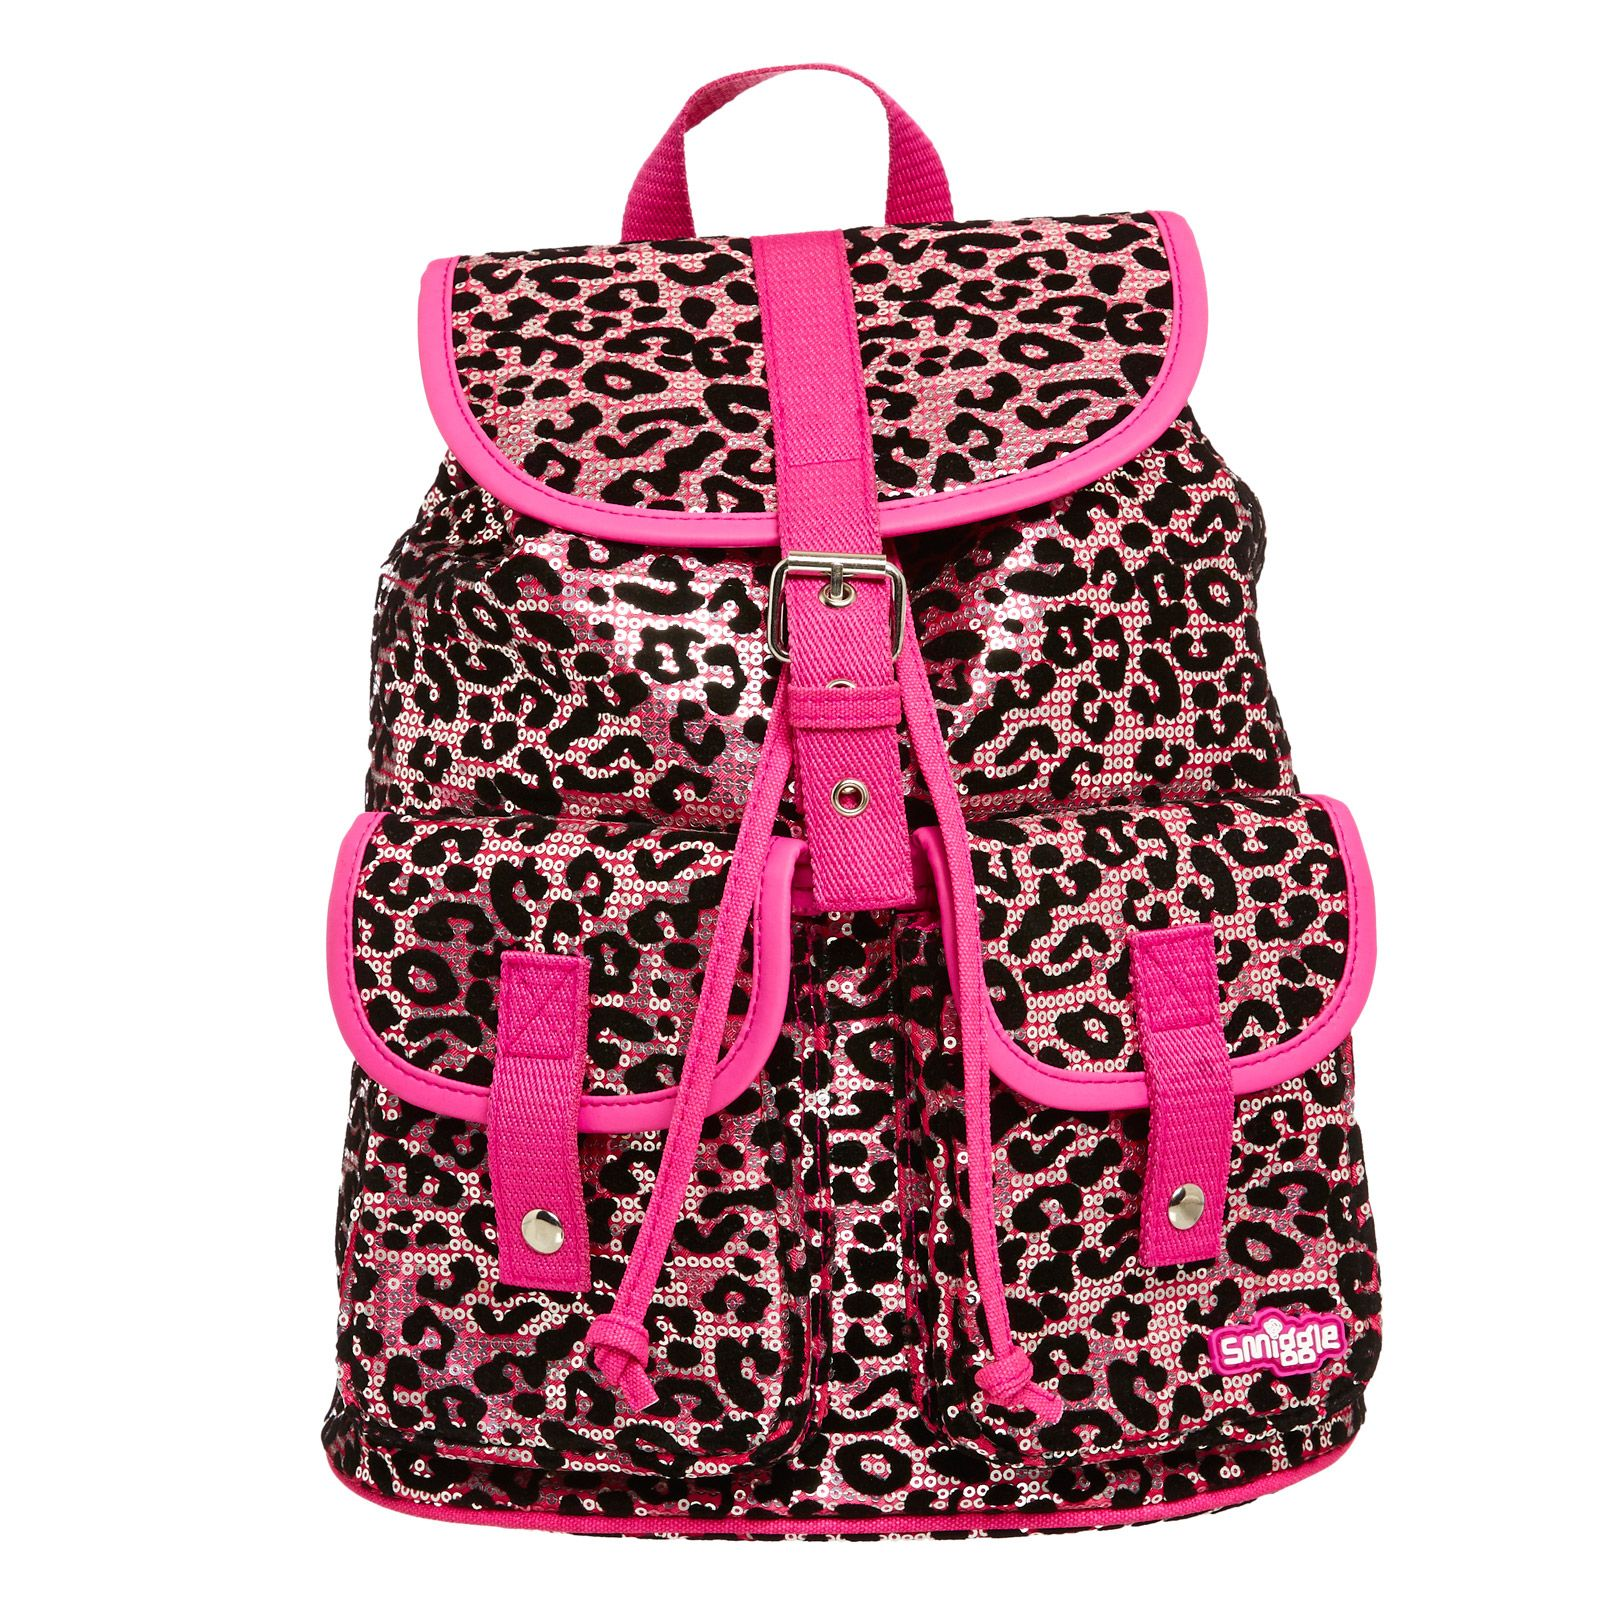 School bag for girl - Image For Jazzy Go Girl Backpack From Smiggle Uk All Bags Online Small Black Bag Man Bag Ad